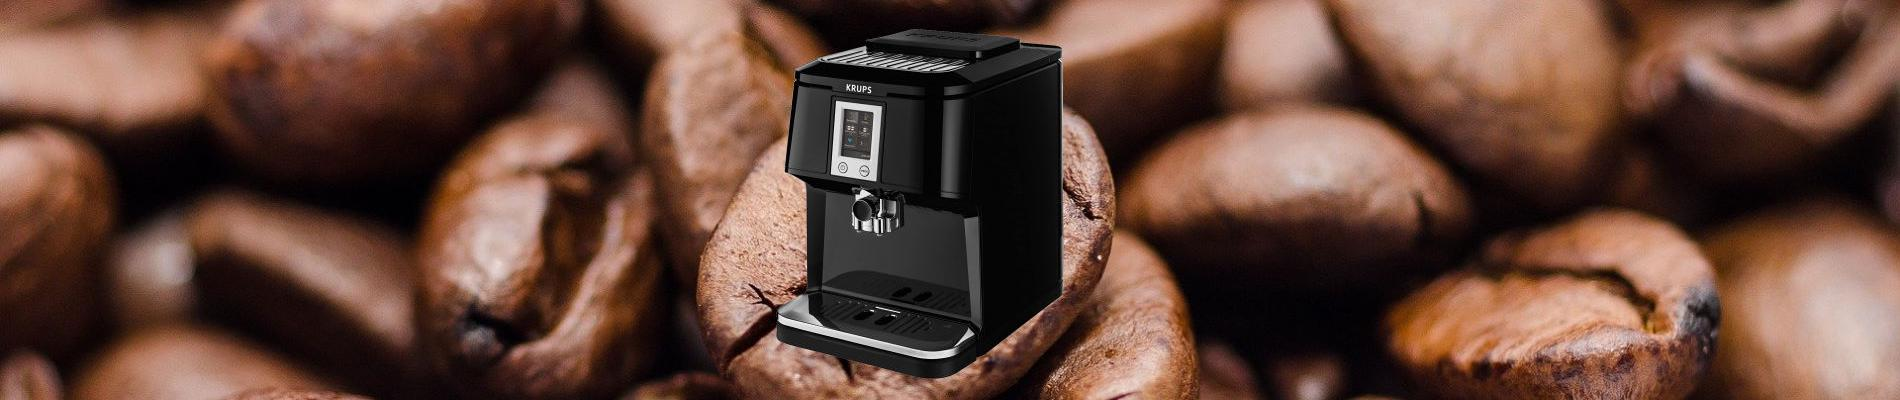 Repairing bean to cup Krups EA8800 coffee machine